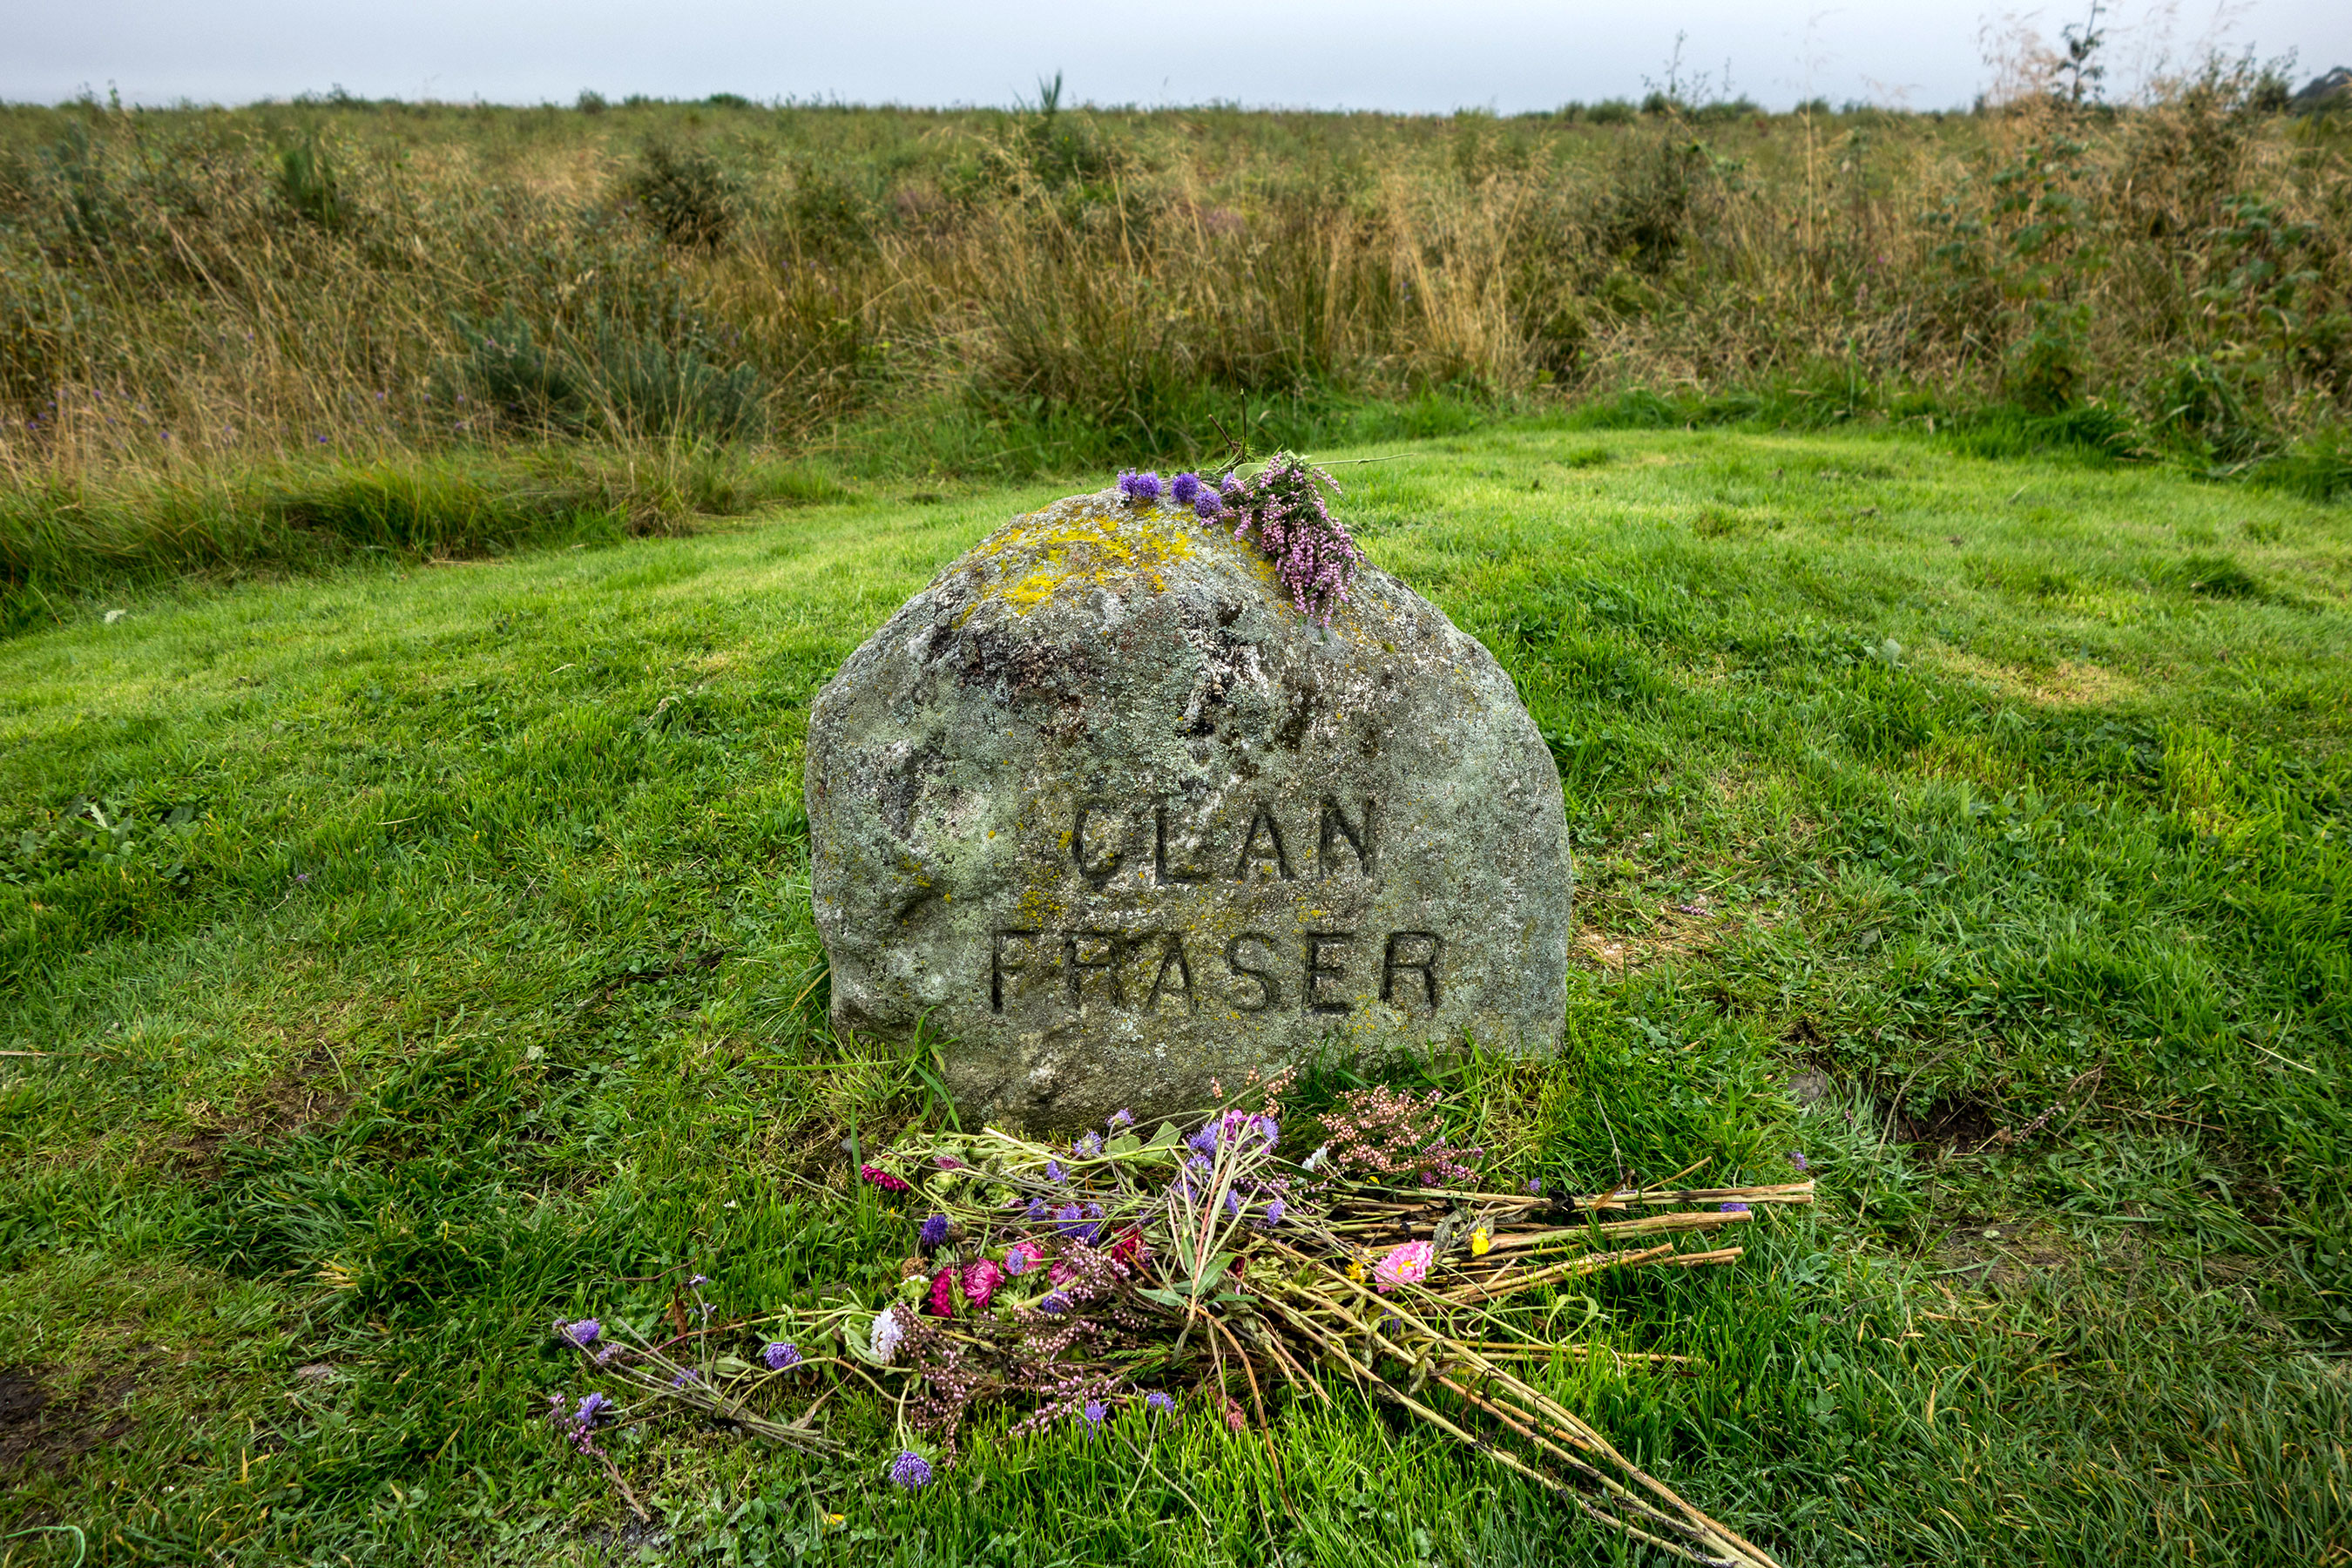 The site where Clan Fraser is buried